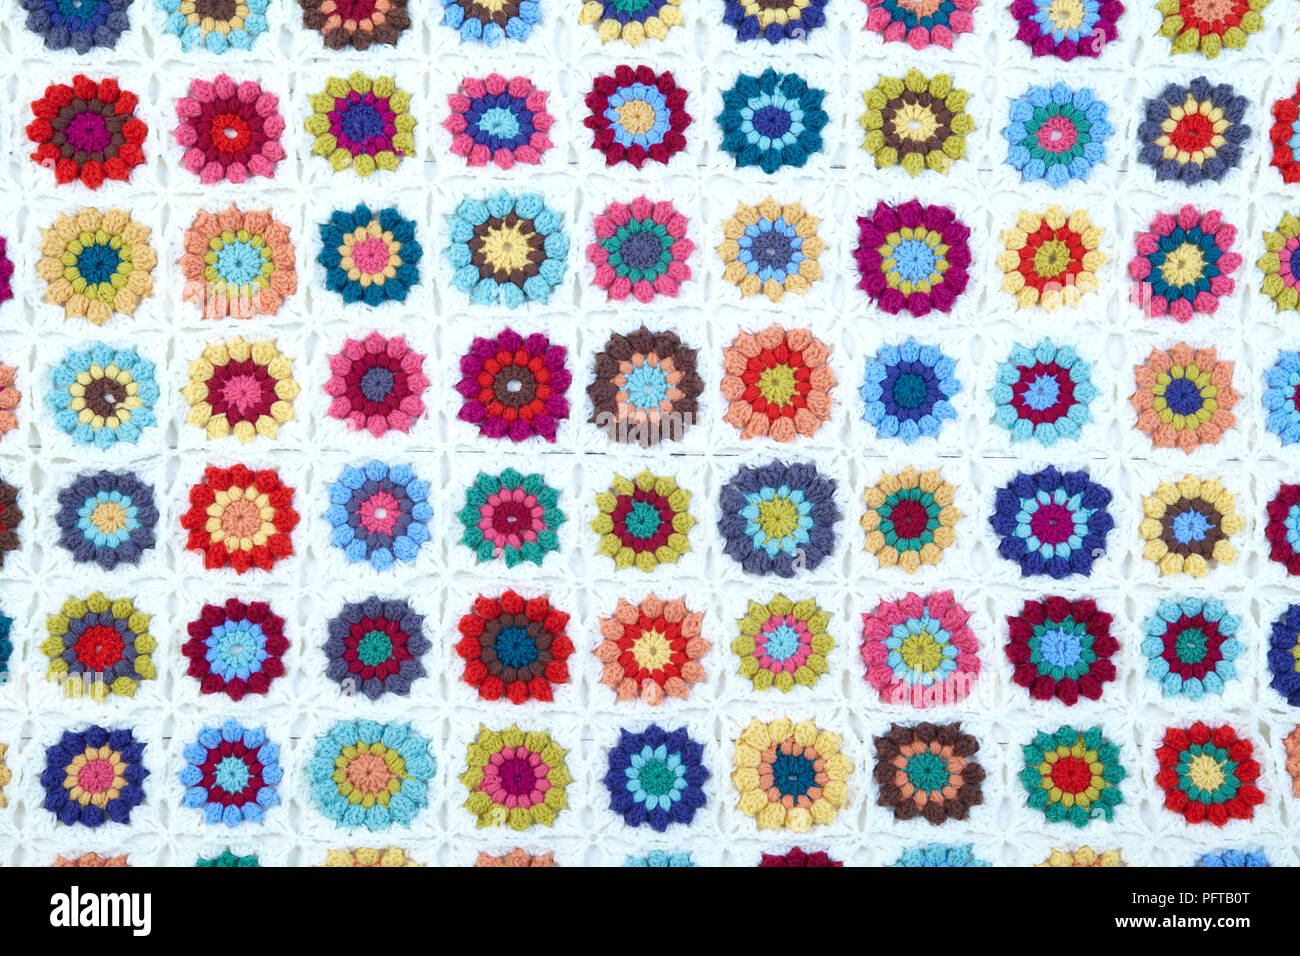 Crocheted Granny Square Blanket With Flowers Stock Photo Alamy